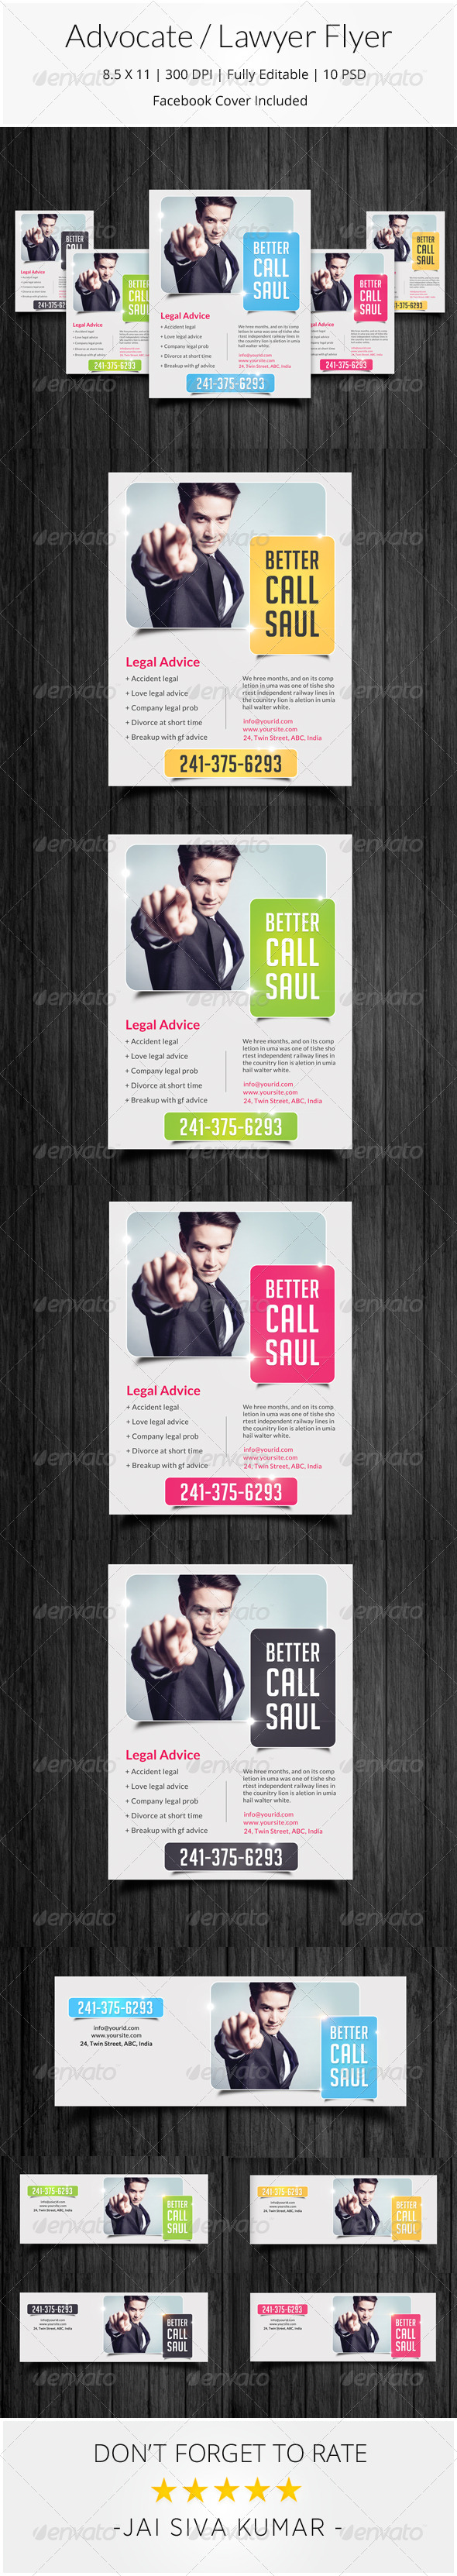 Advocate Lawyer Flyer